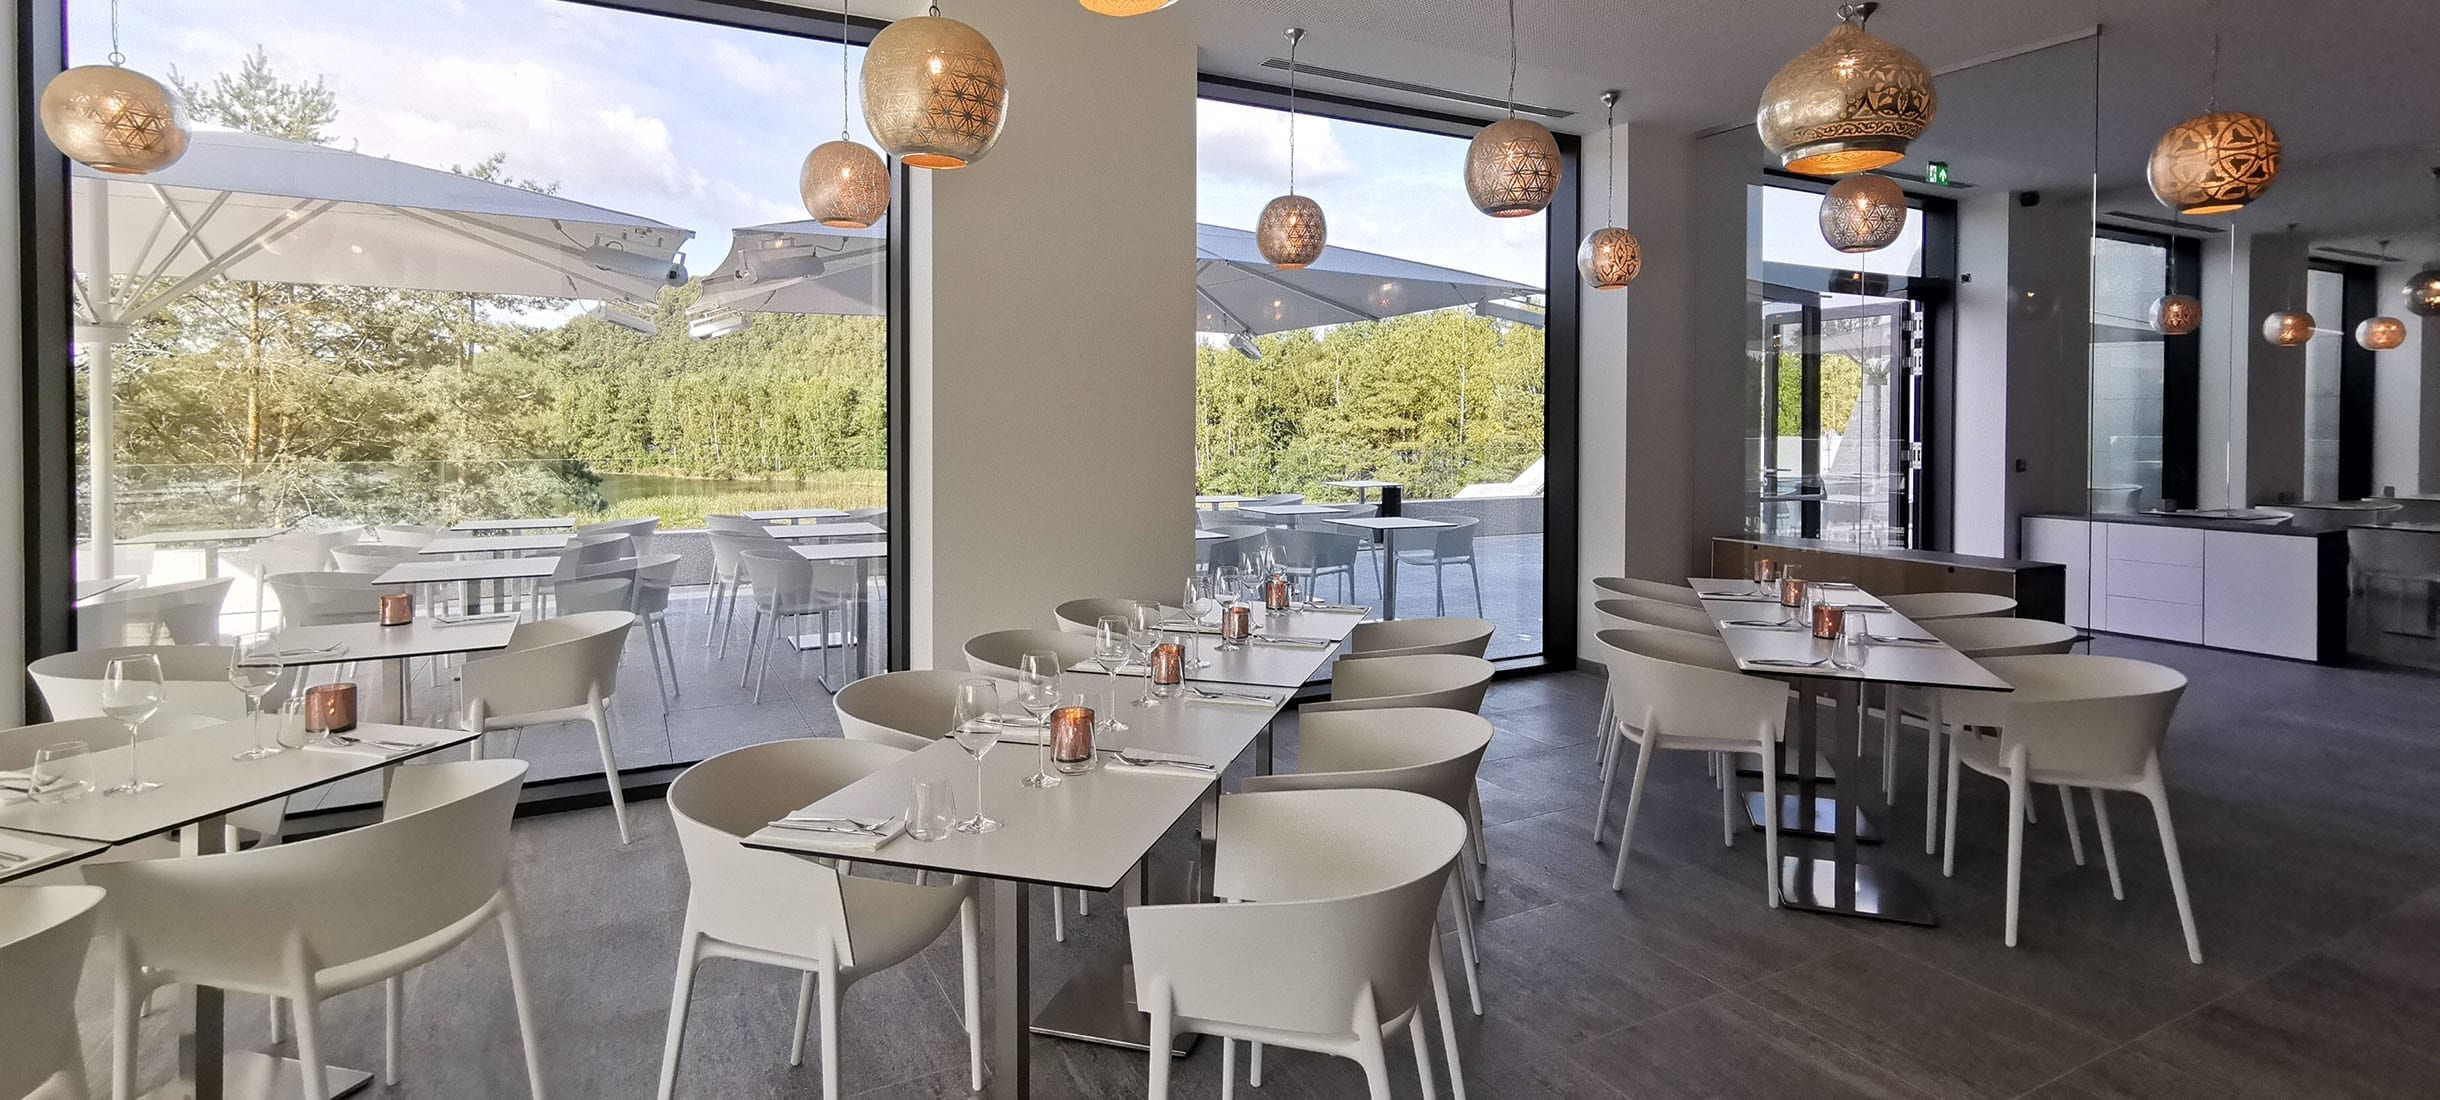 wellness restaurant bij Elaisa Energetic Wellness